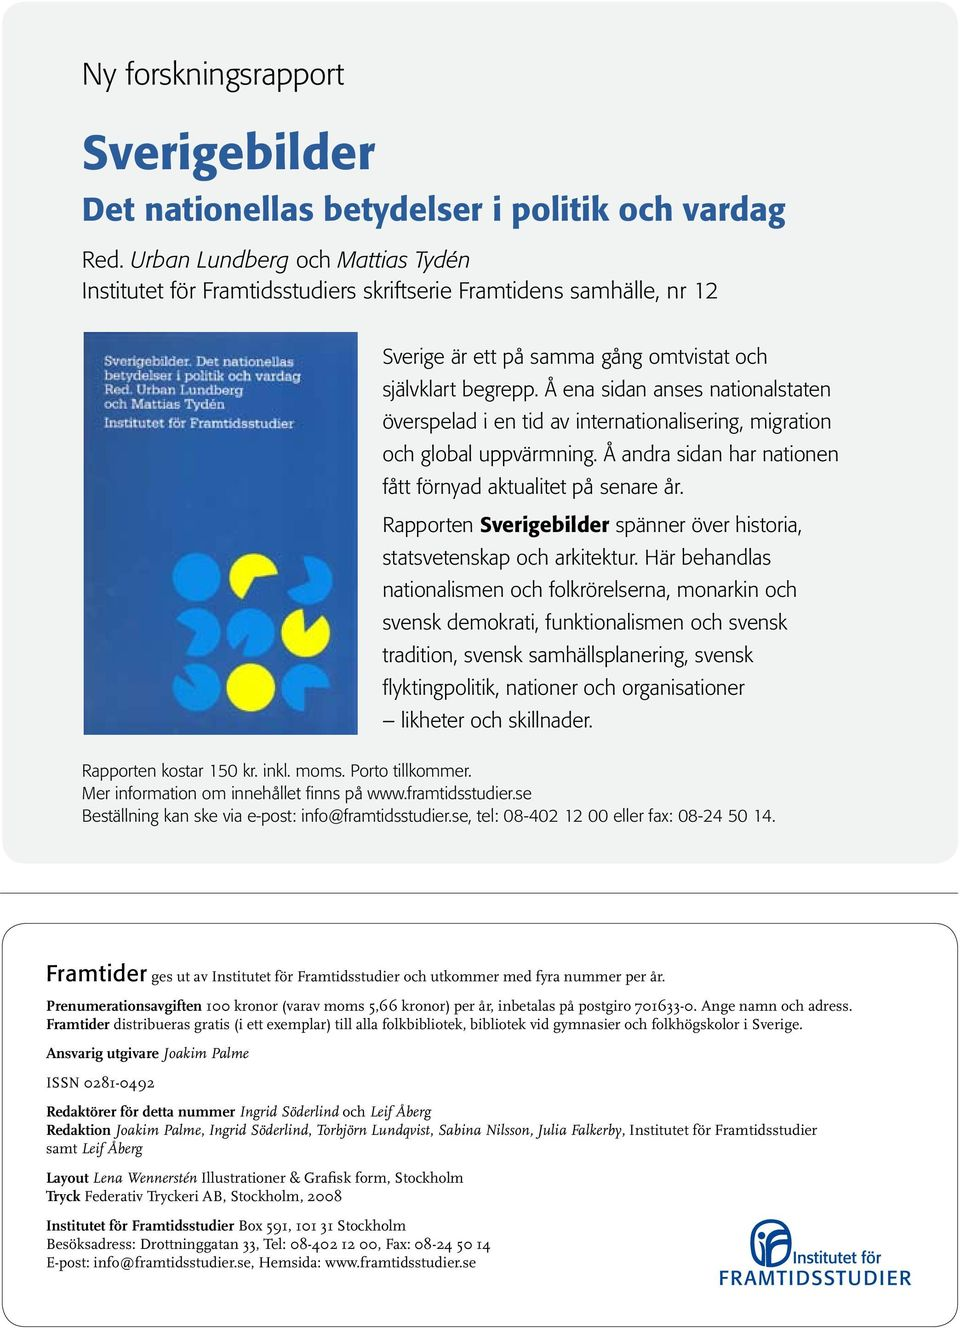 Å ena sidan anses nationalstaten överspelad i en tid av internationalisering, migration och global uppvärmning. Å andra sidan har nationen fått förnyad aktualitet på senare år.